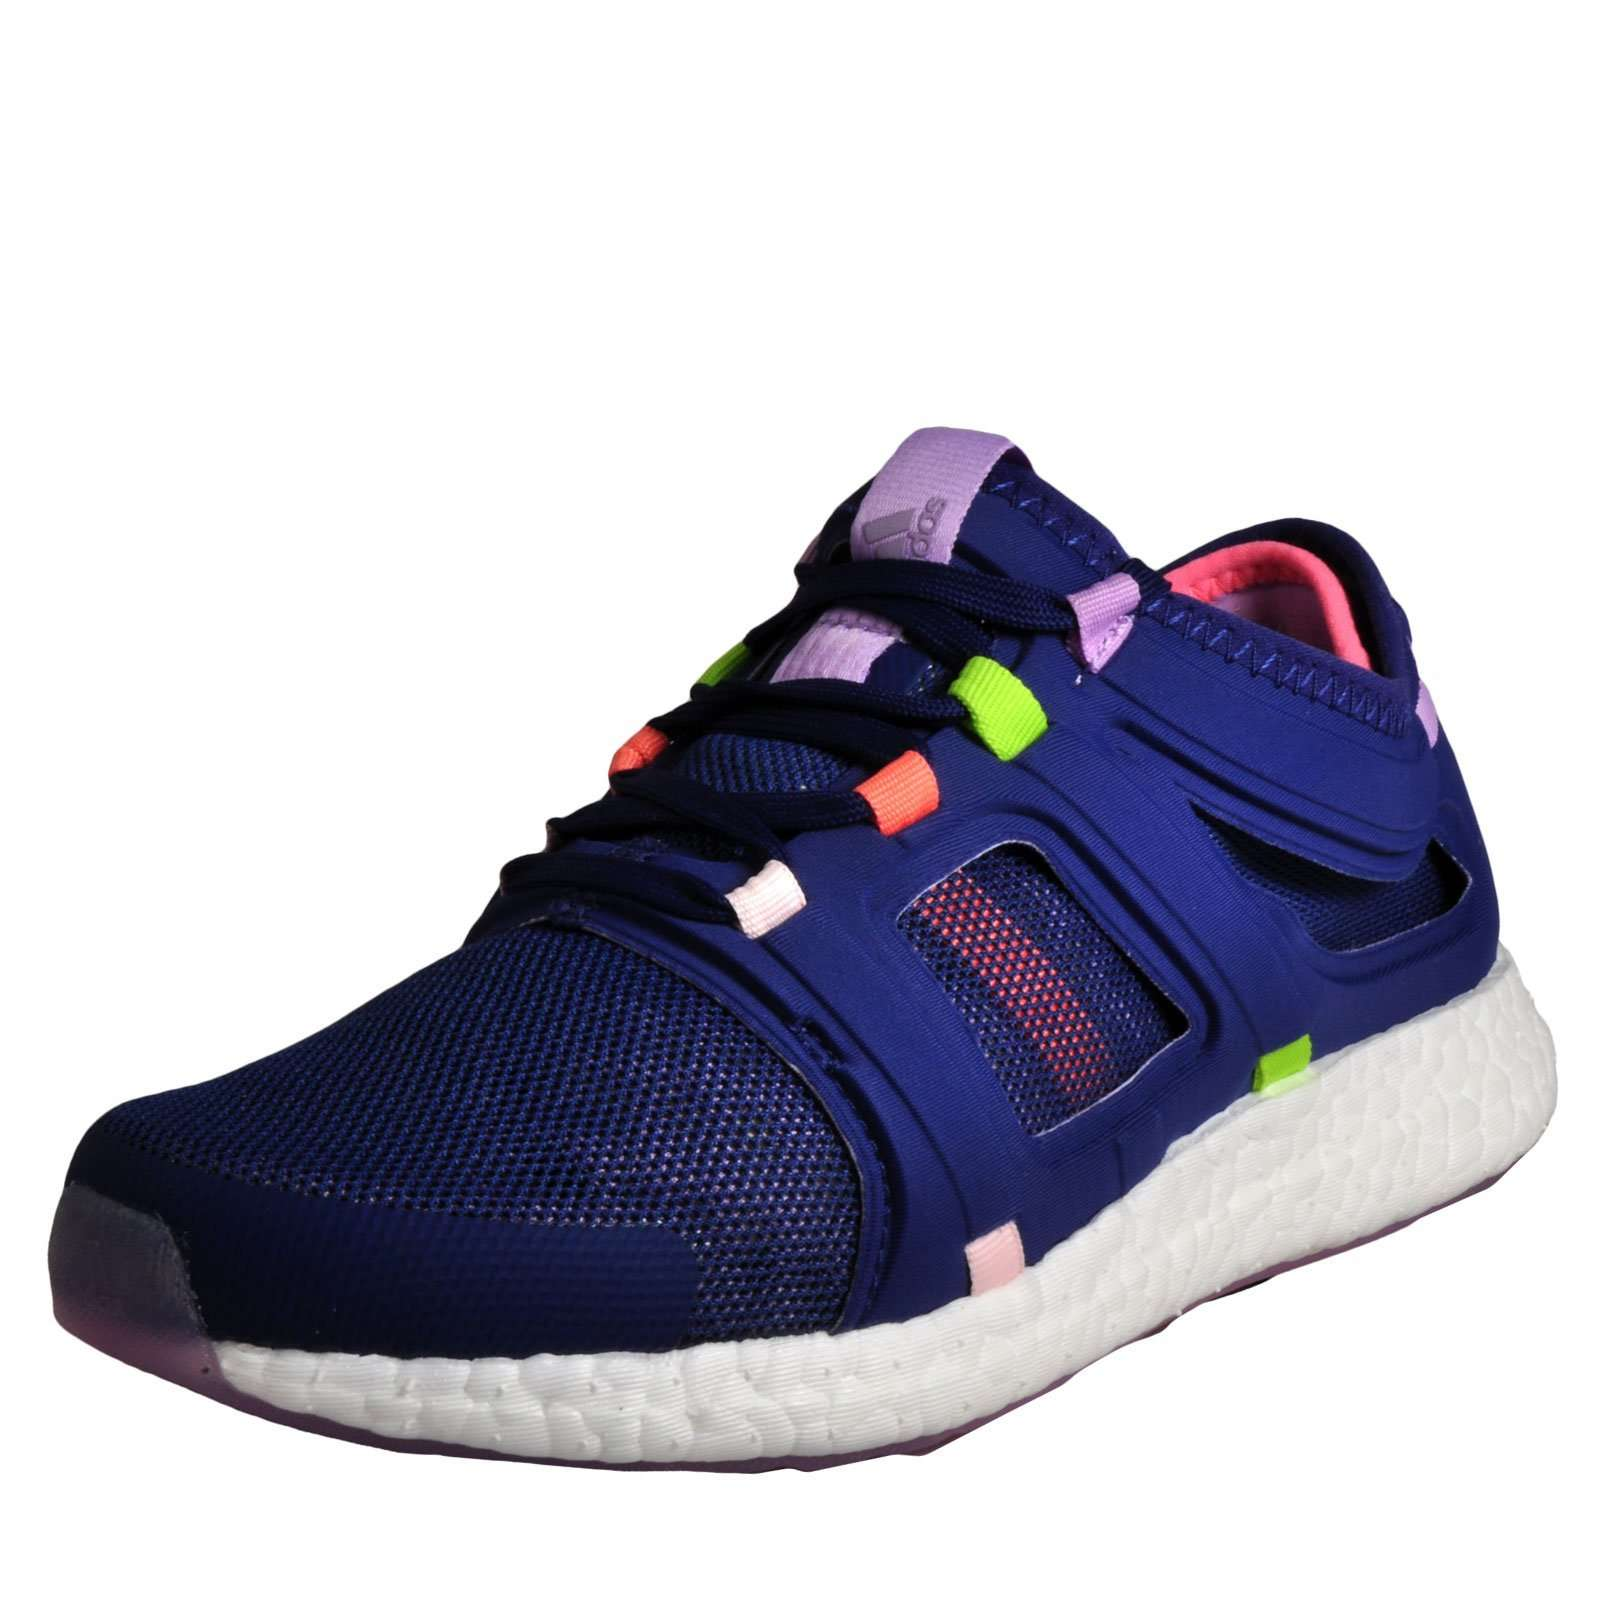 for whole family detailed images retail prices Adidas Clima Chill Rocket Womens Boost Running Shoe